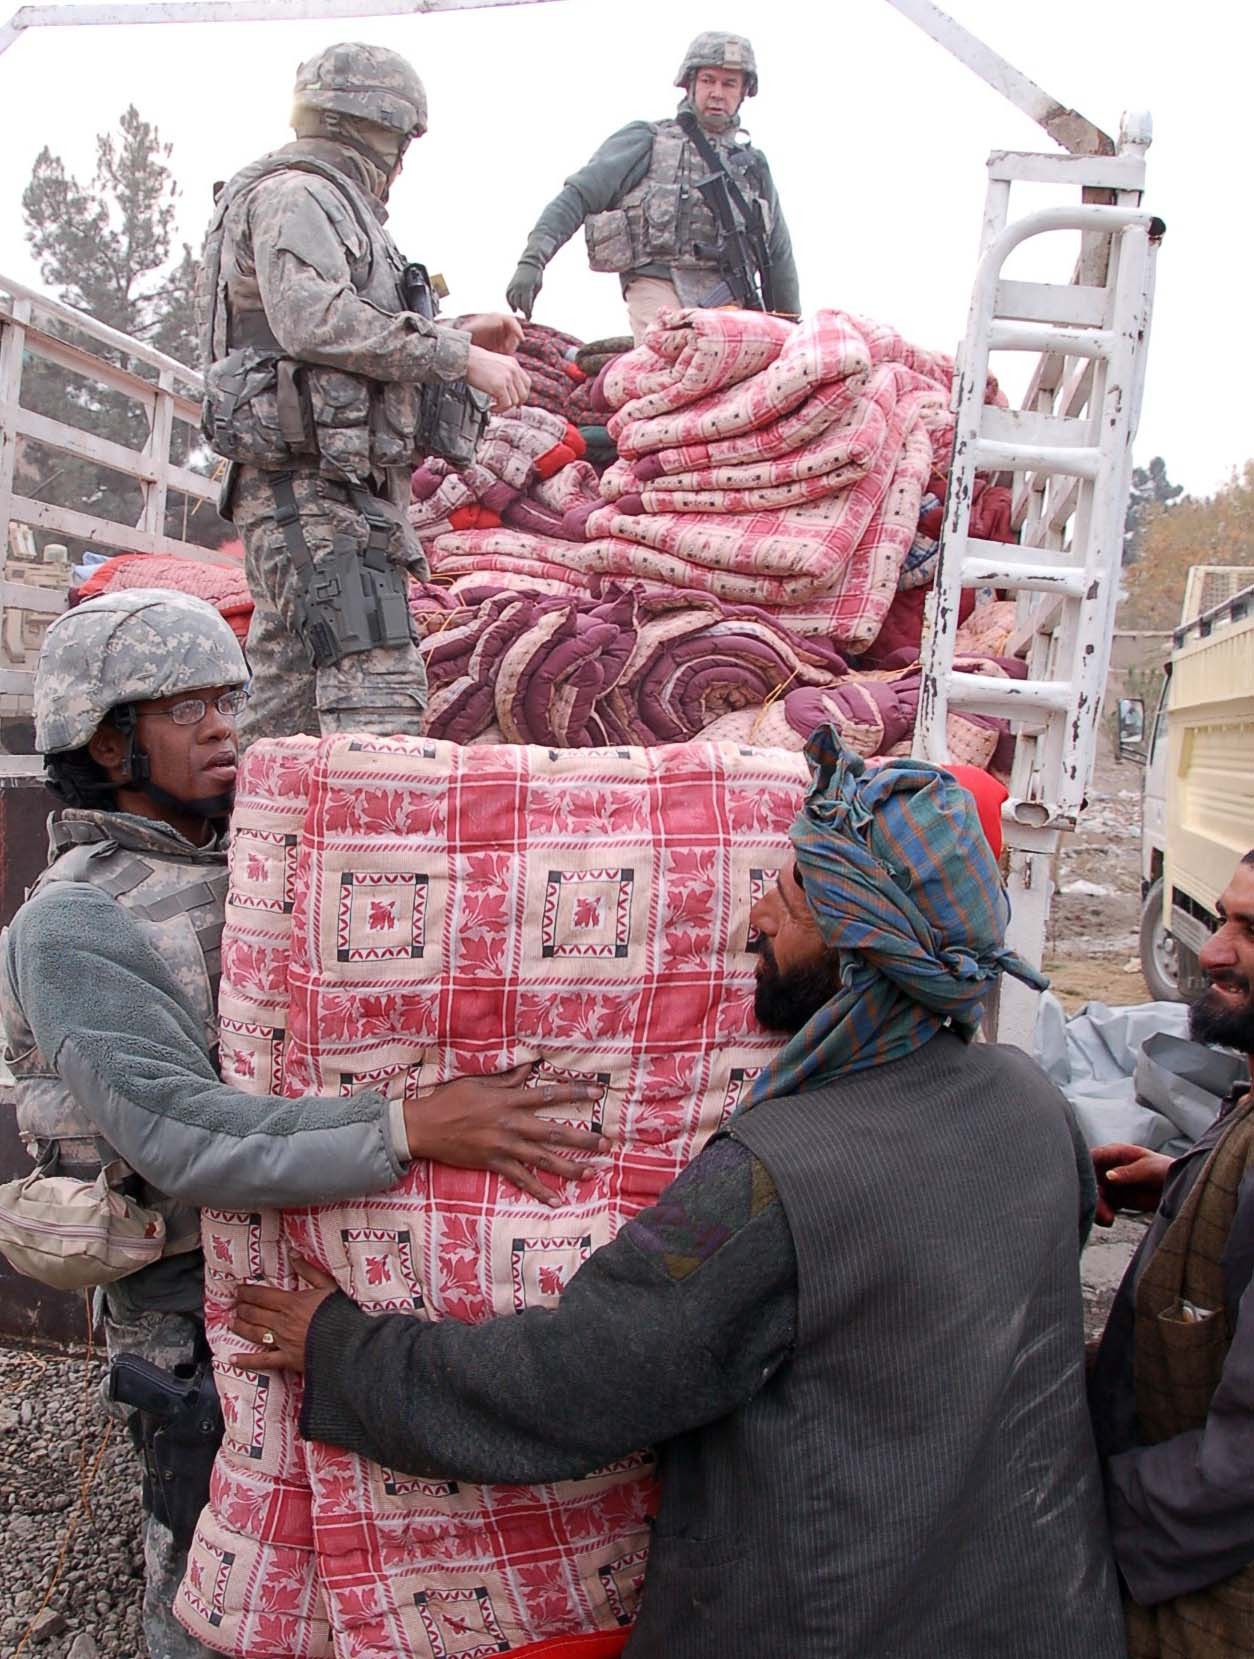 Volunteers distribute blankets to needy Afghan refugee families. The blankets were made by widows of Afghanistan National Police members. The Volunteer Community Relations program purchased them with proceeds from a donation to help the widows with their small business. (USACE photo by Hank Heusinkveld)